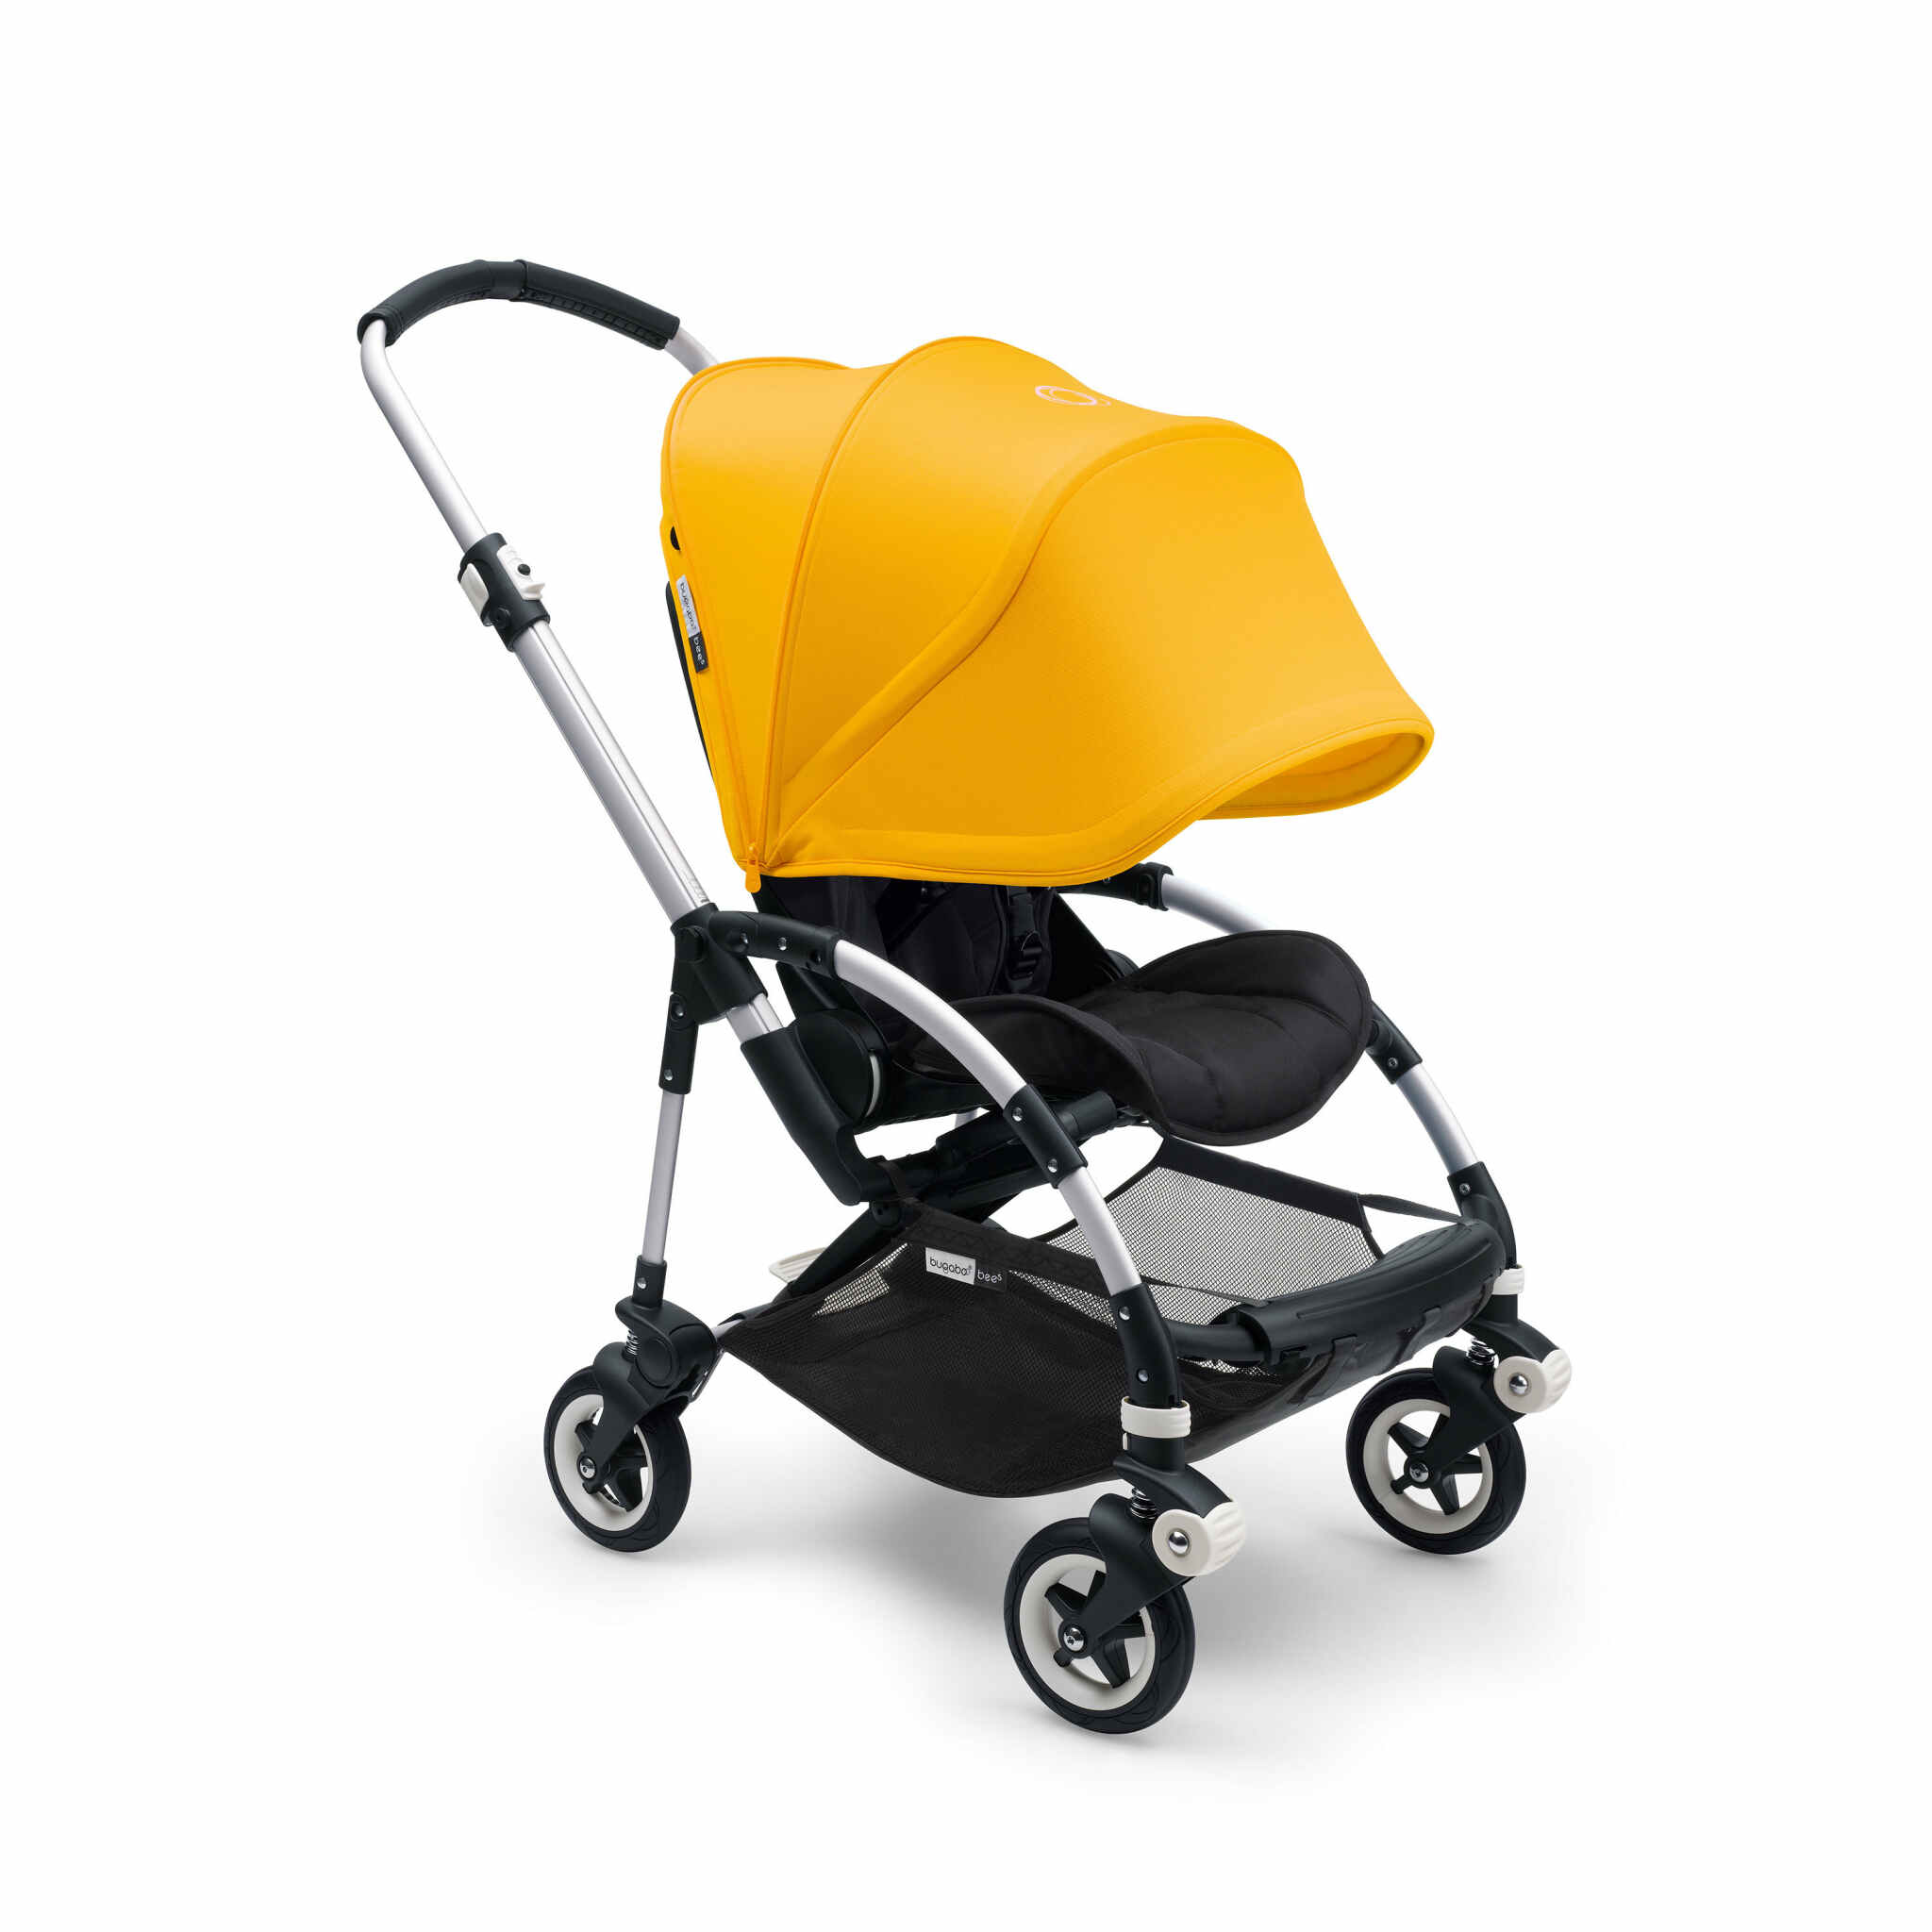 Bugaboo Bee | Top 5 Best Bugaboo Stroller Reviews